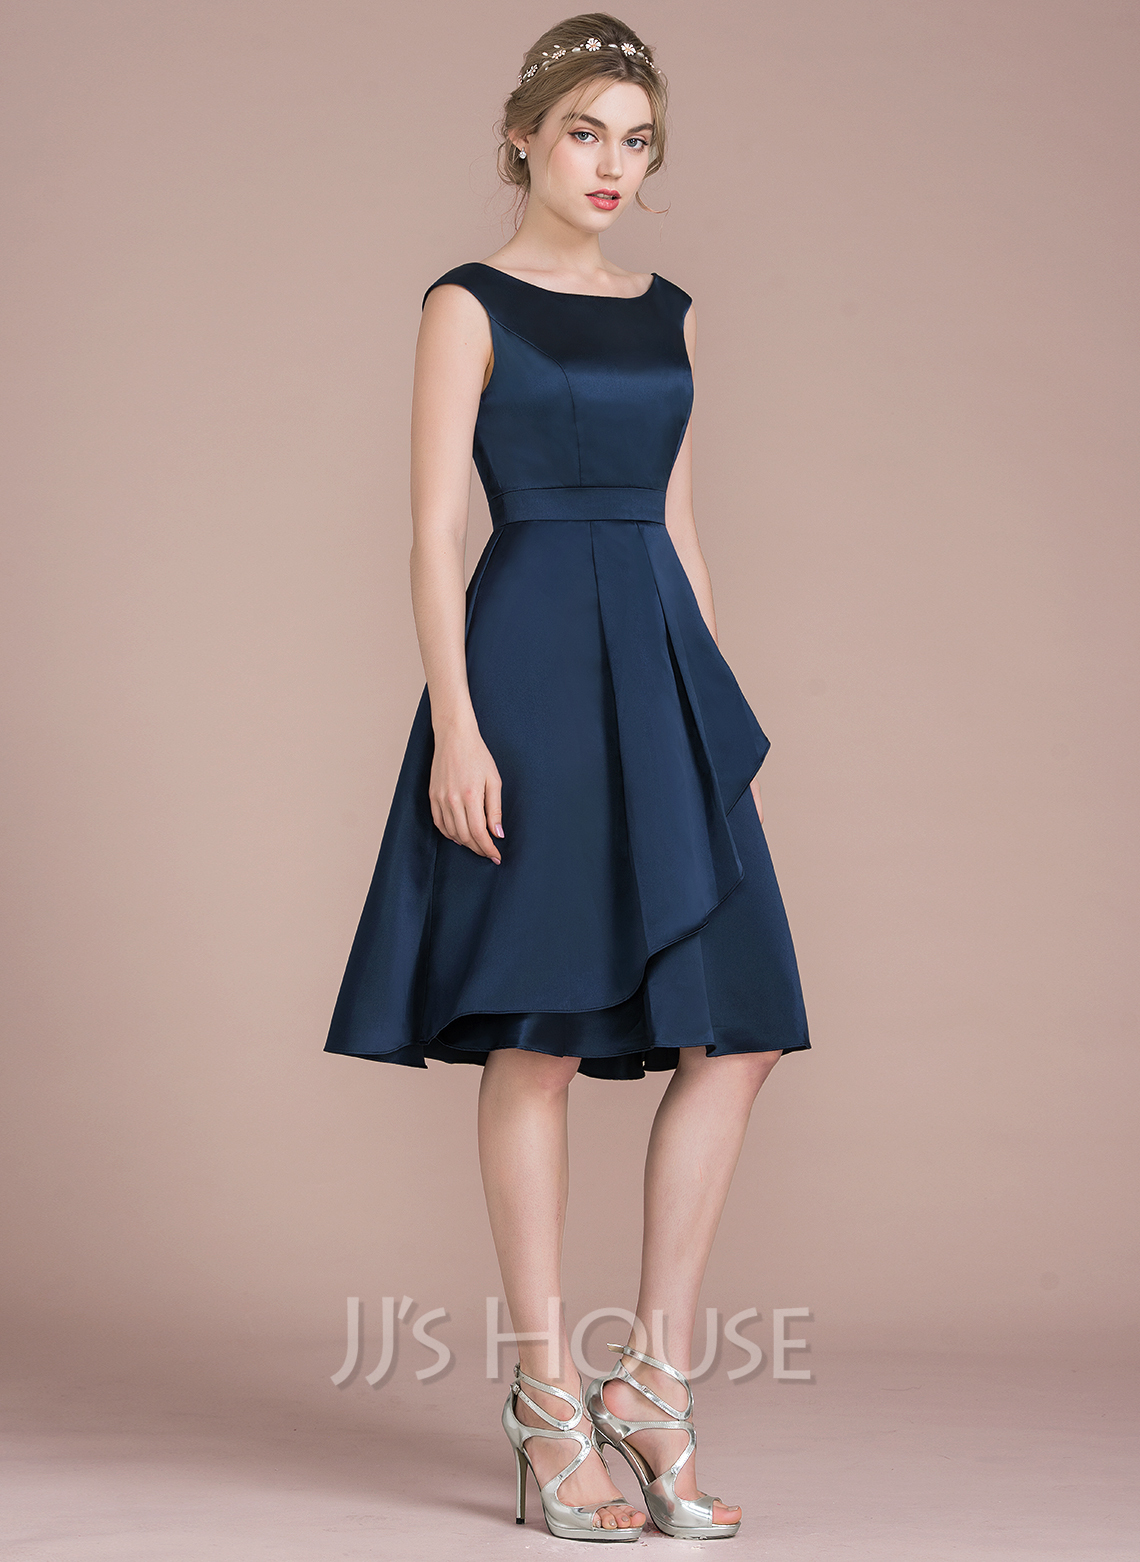 24122cdd792d A-Line/Princess Scoop Neck Knee-Length Satin Bridesmaid Dress With  Cascading Ruffles. Loading zoom